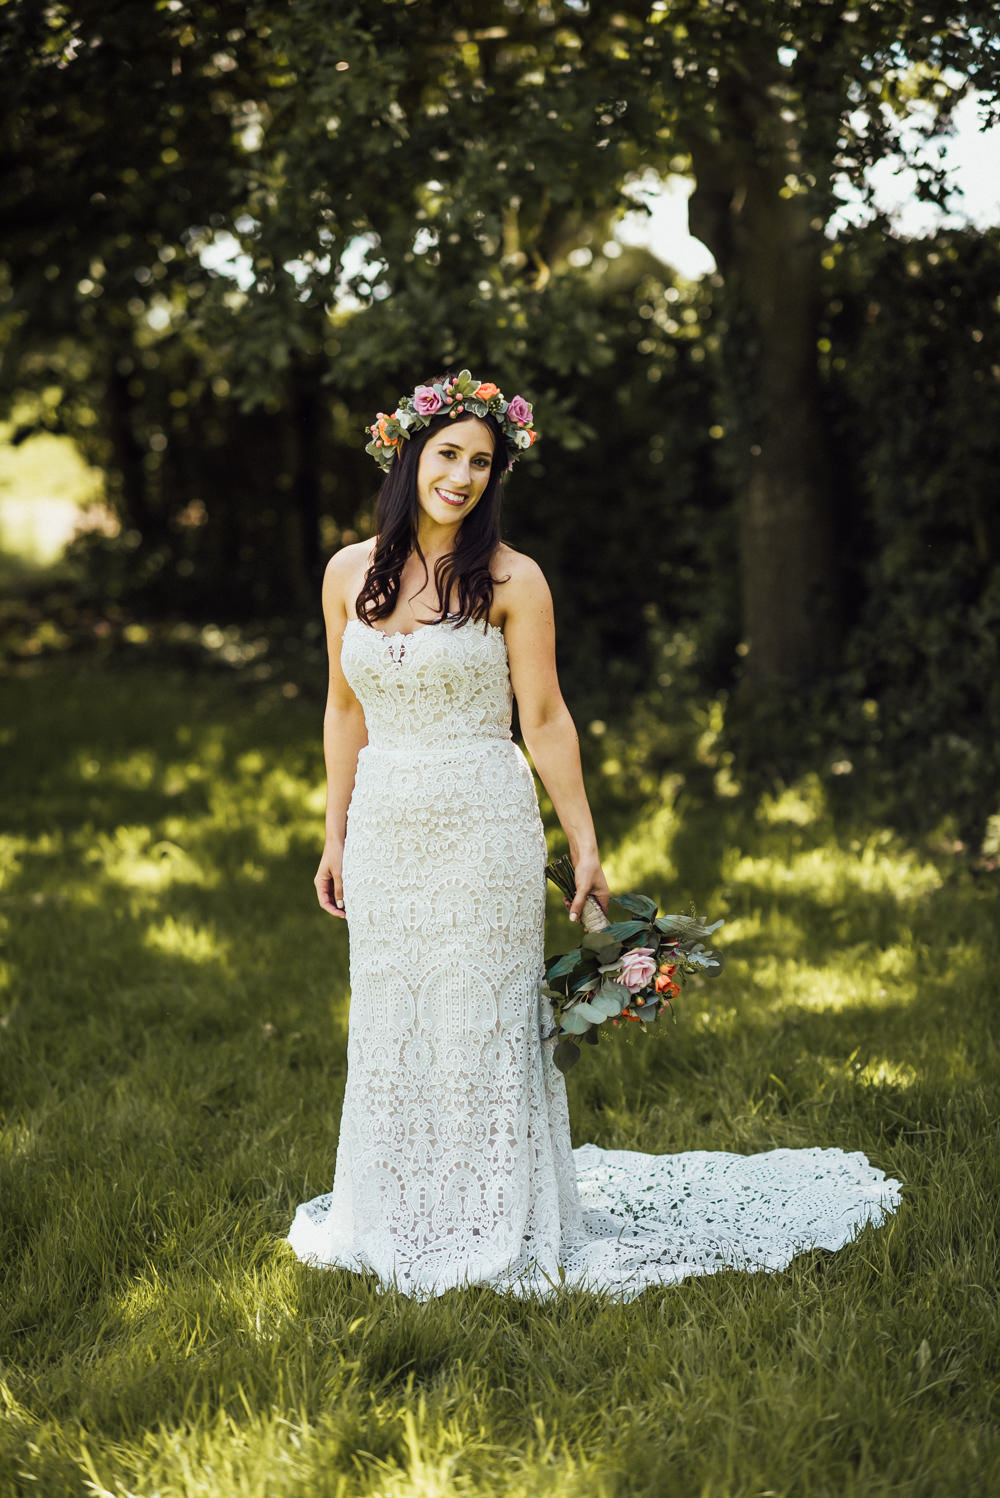 Bride Bridal Dress Gown Lace Strapless Train Long Furlong Farm Wedding Michelle Wood Photographer